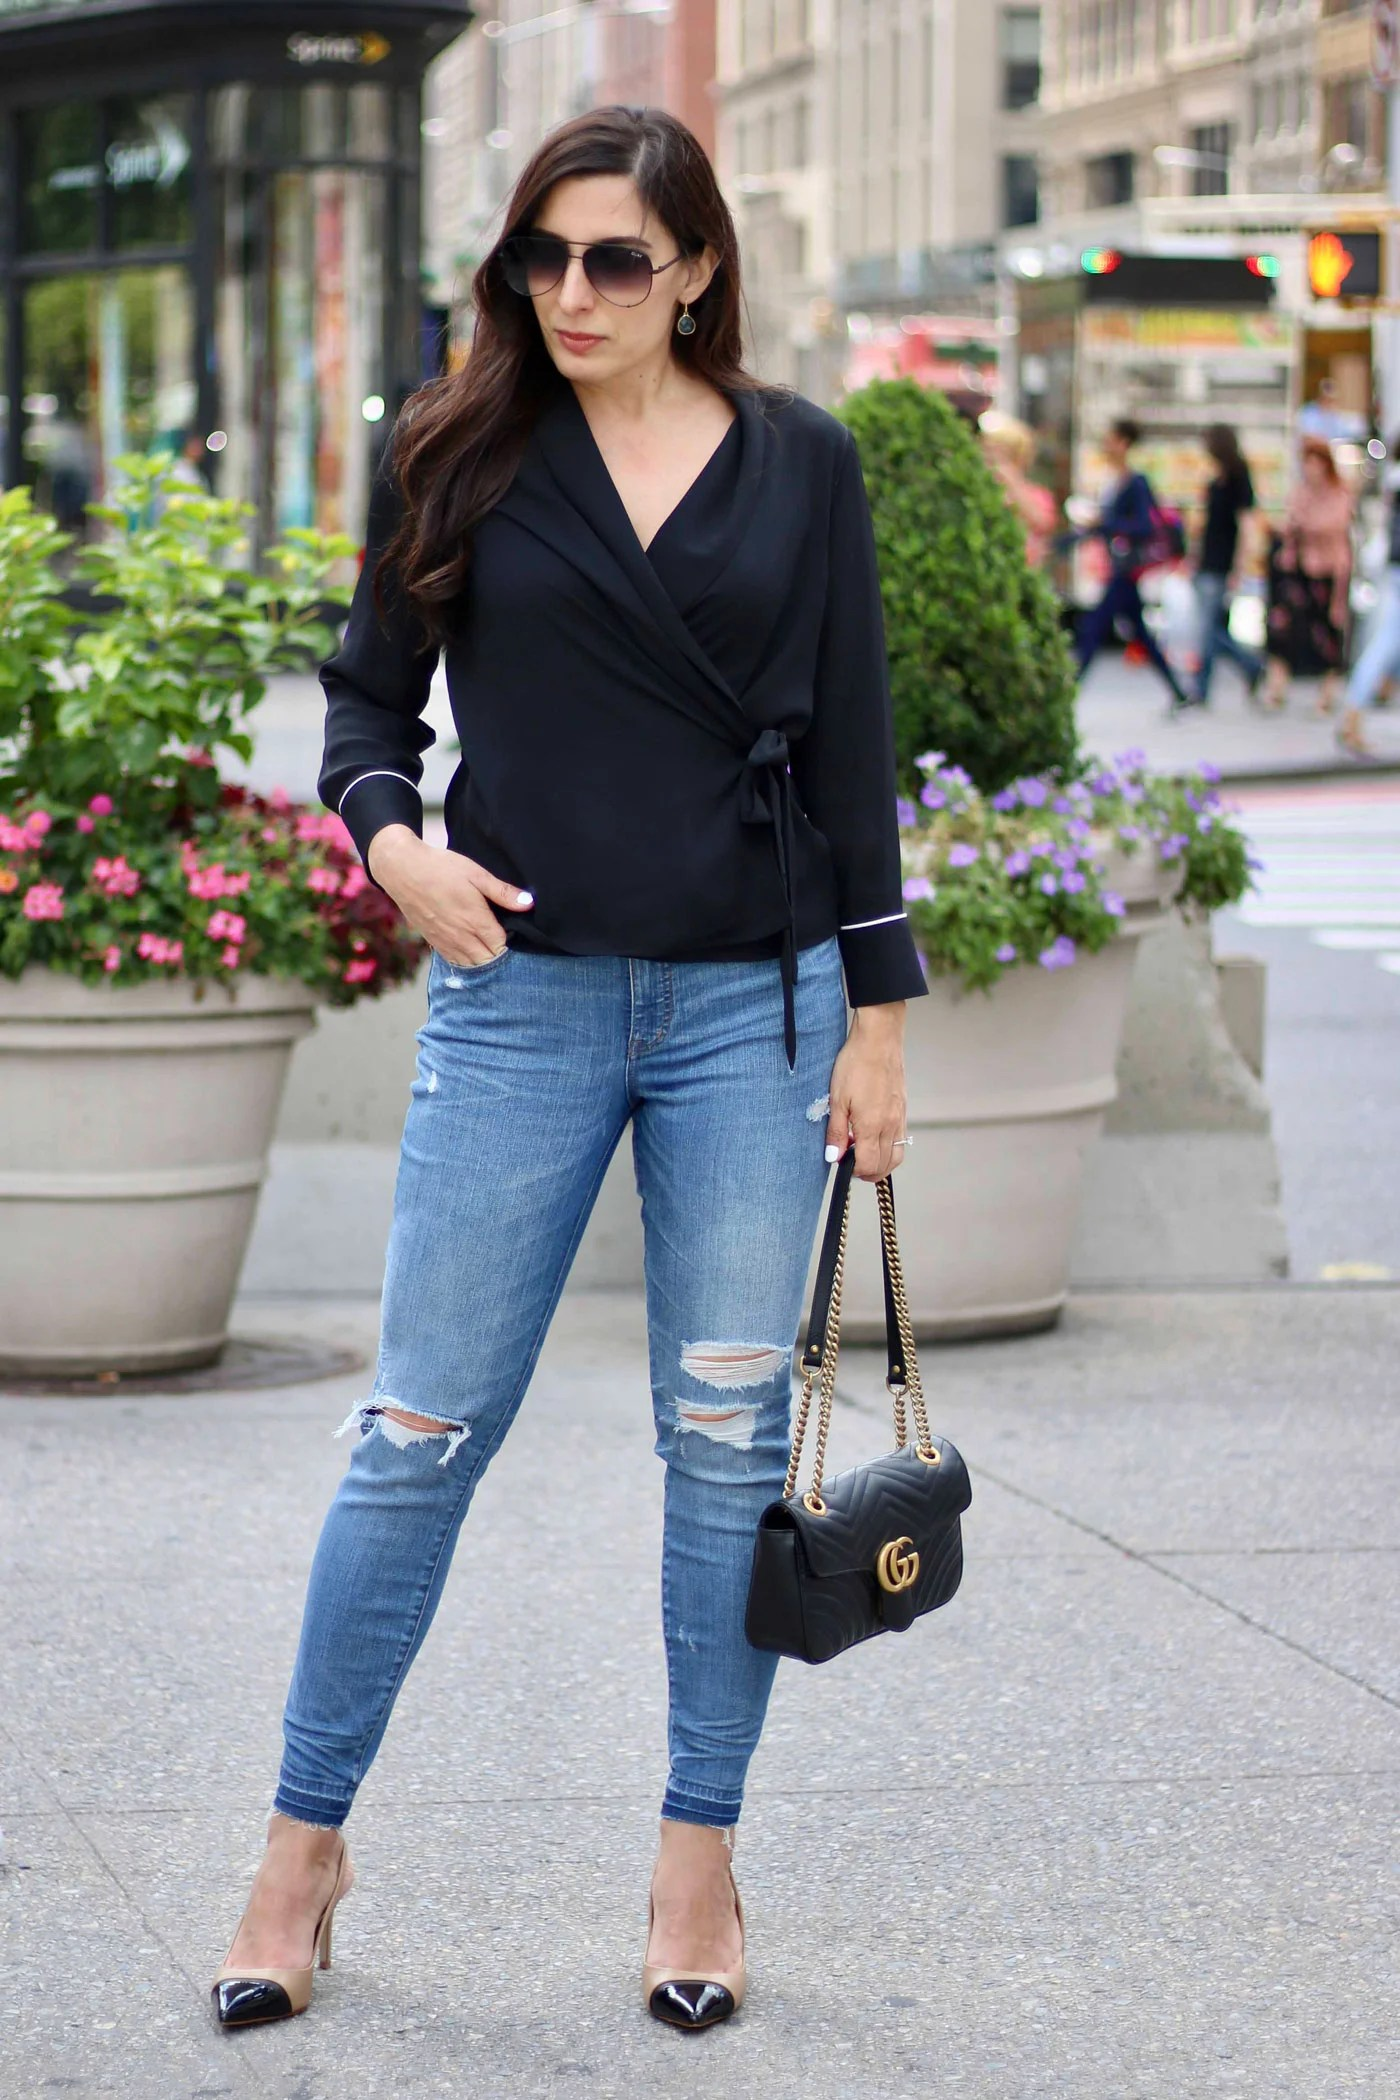 Zara Wrap Top, Madewell Jeans, Gucci Marmont Bag, Quay Sunglasses